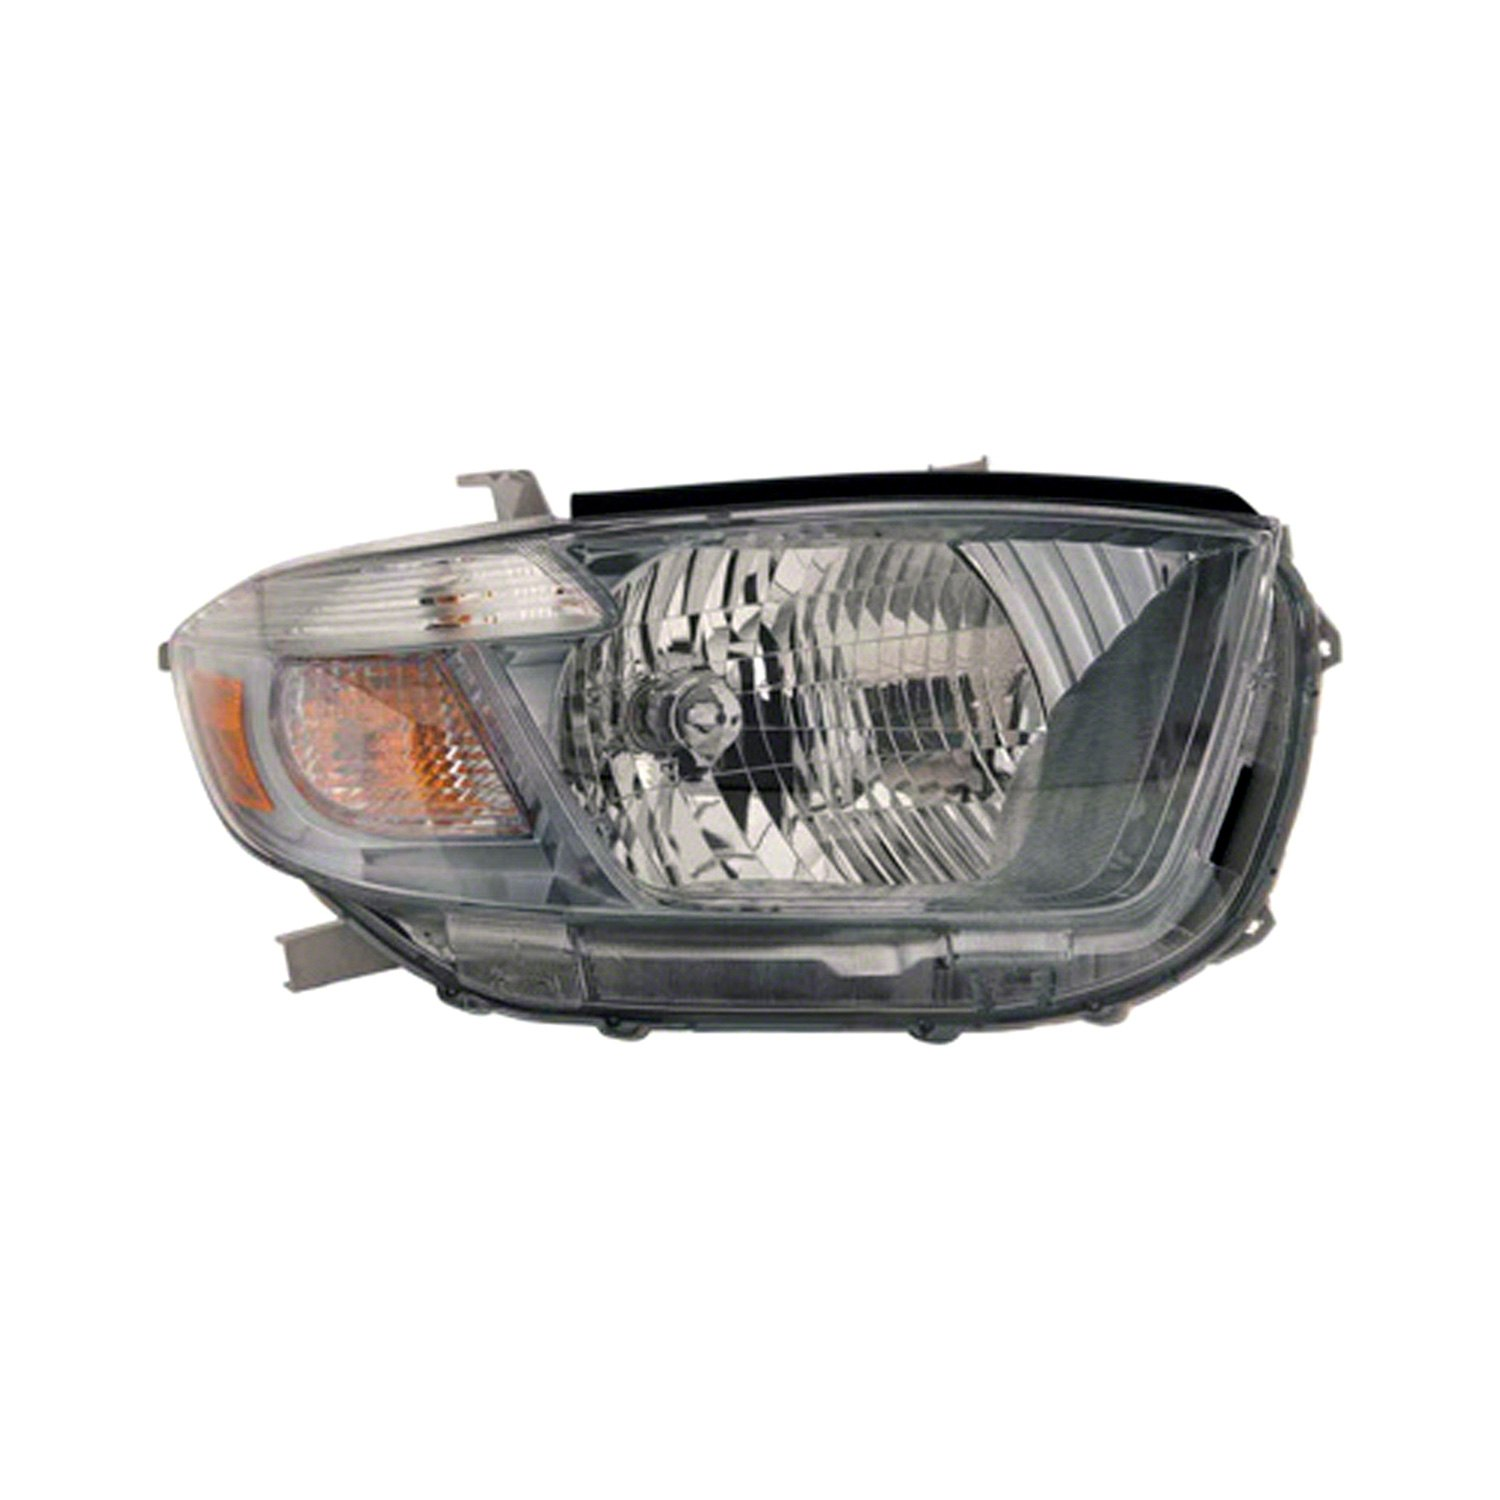 2005 toyota camry headlight bulb. Black Bedroom Furniture Sets. Home Design Ideas